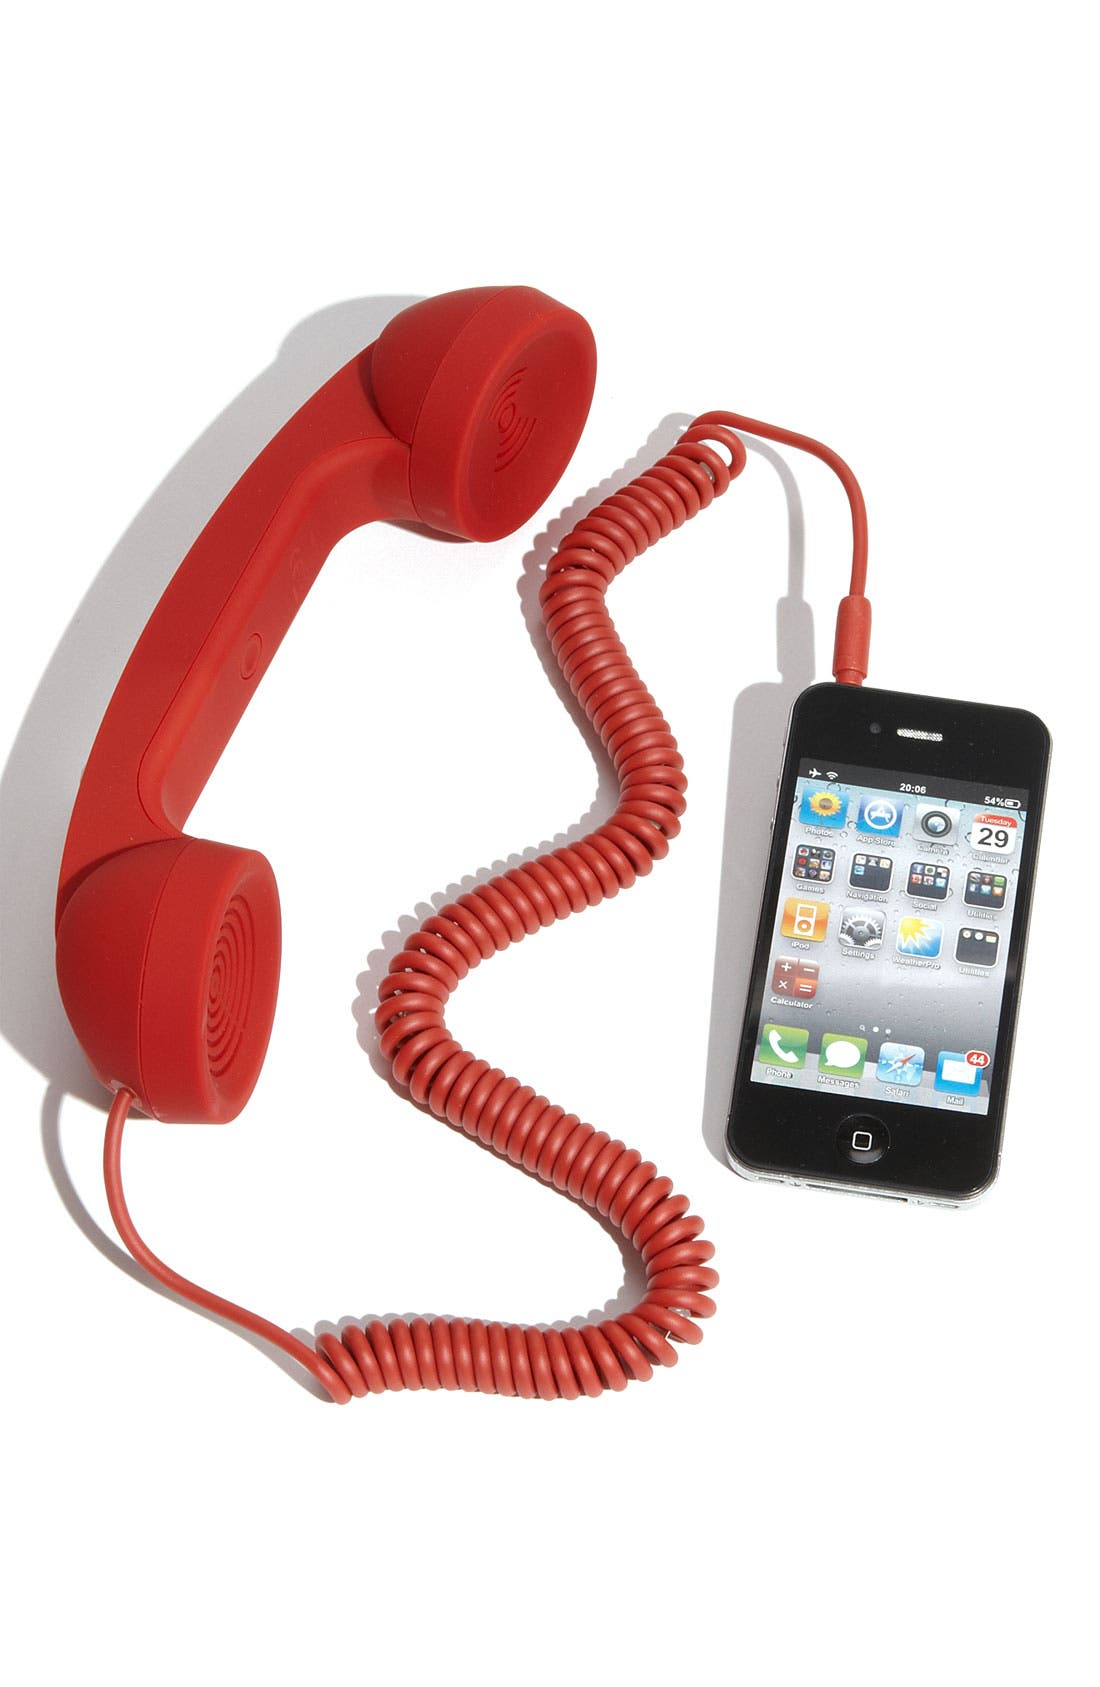 Main Image - Native Union 'Pop Phone' Handset